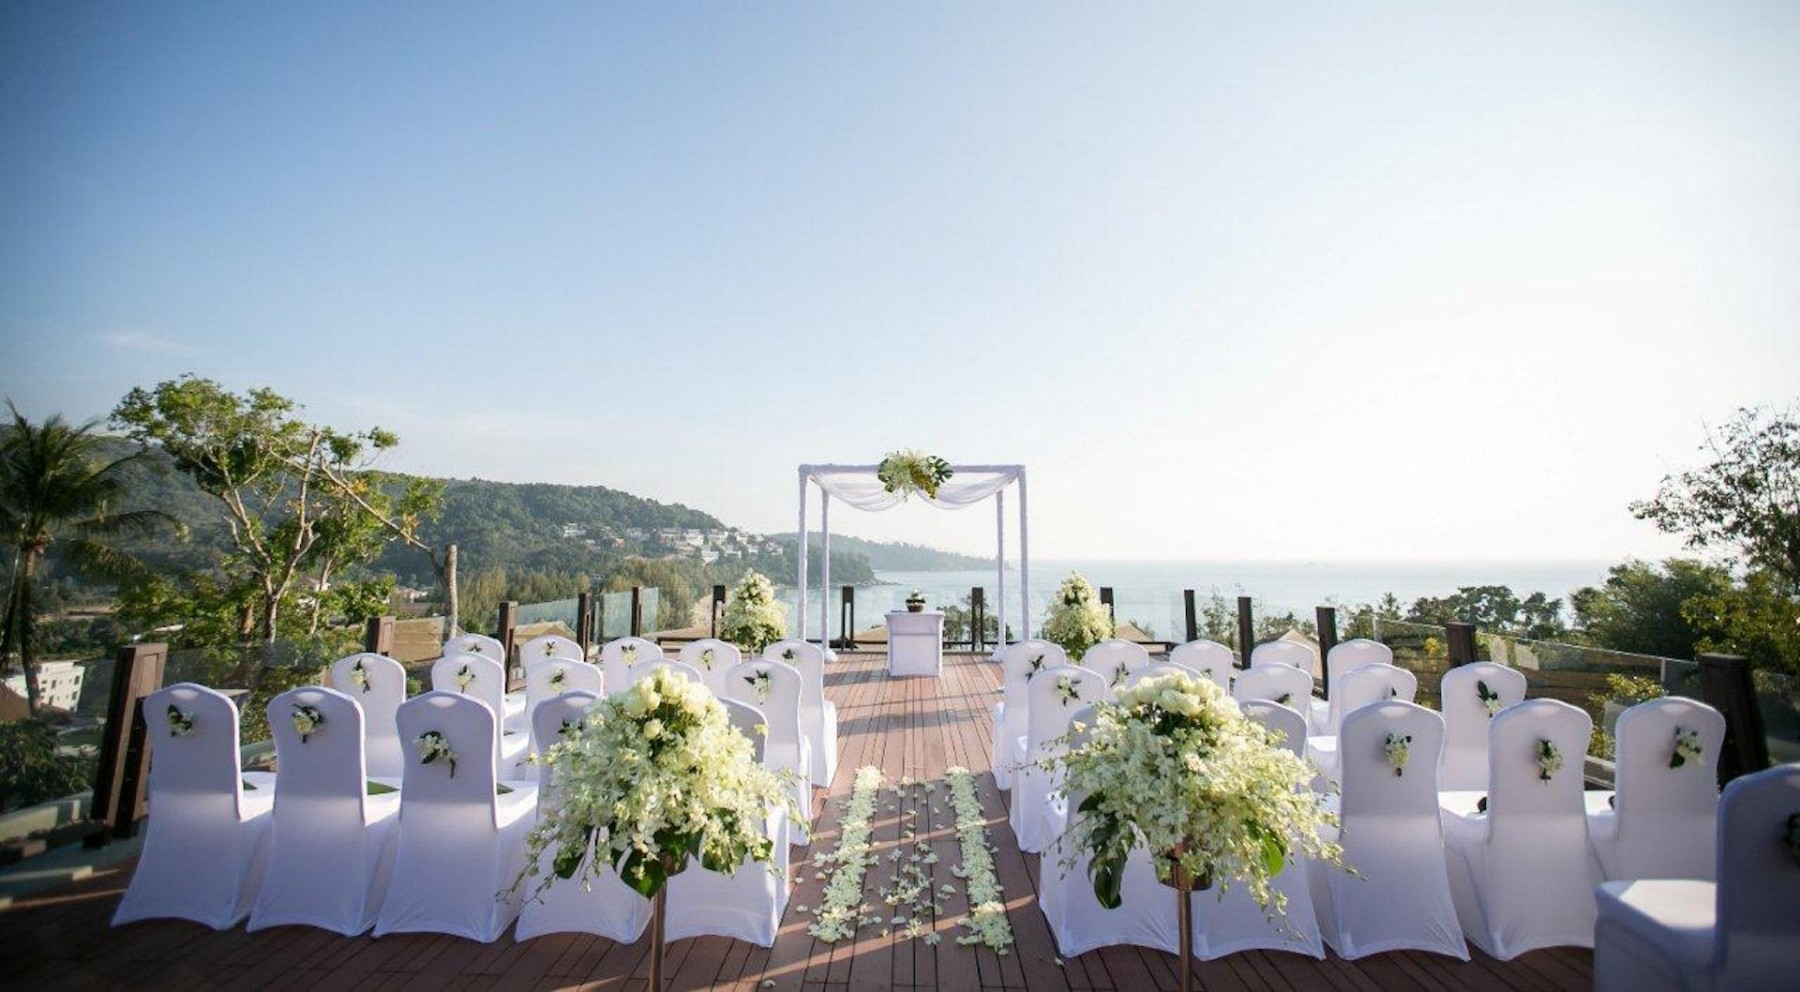 Serenity resort phuket wedding